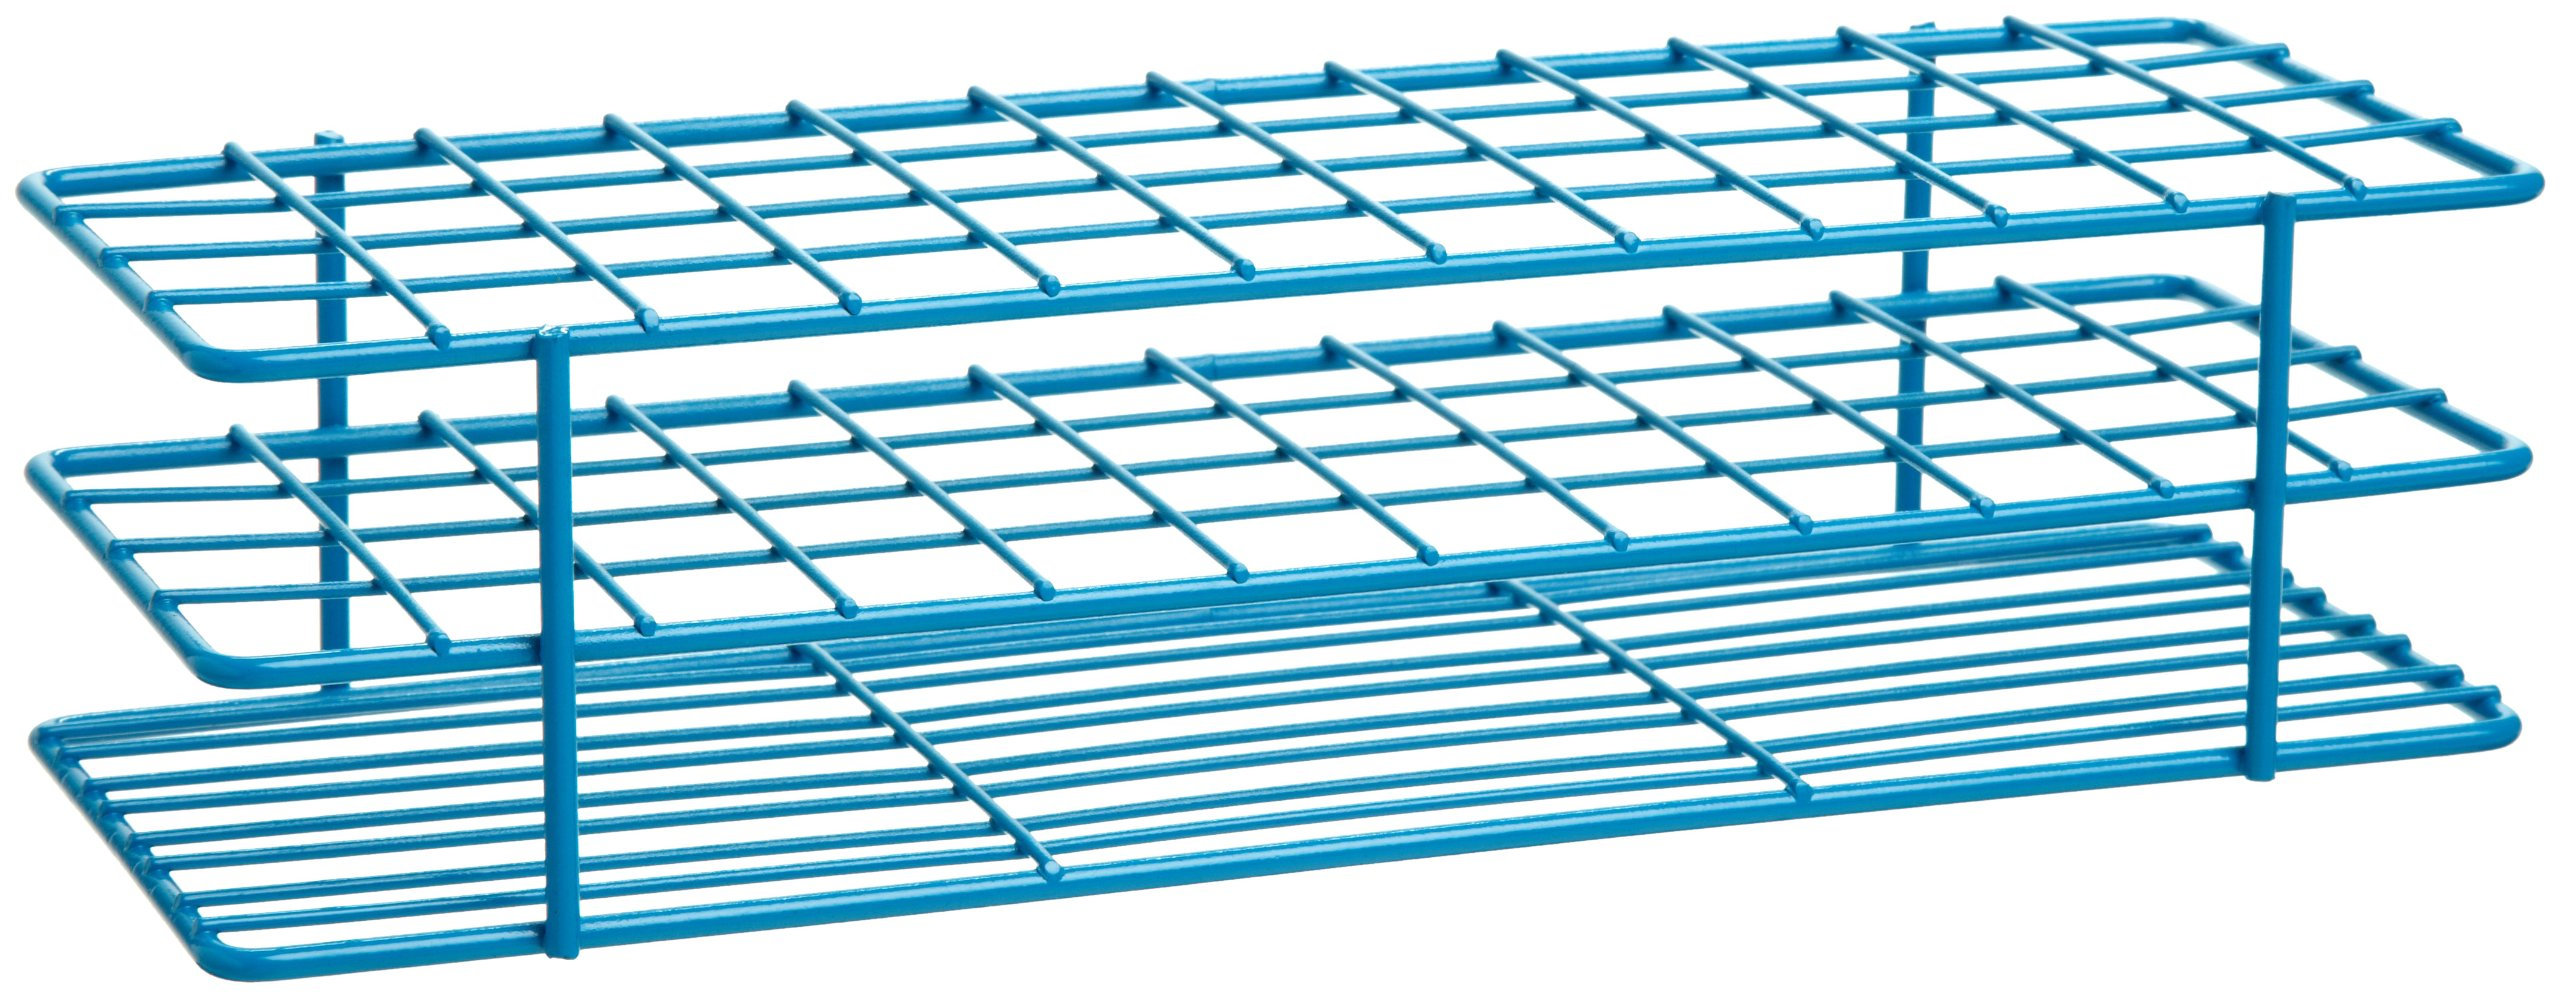 Bel-Art F18755-0001 Poxygrid Test Tube Rack; 13-16mm, 48 Places, 9¹/₂ x 3⁵/₈ x 2¹/₂ in., Blue